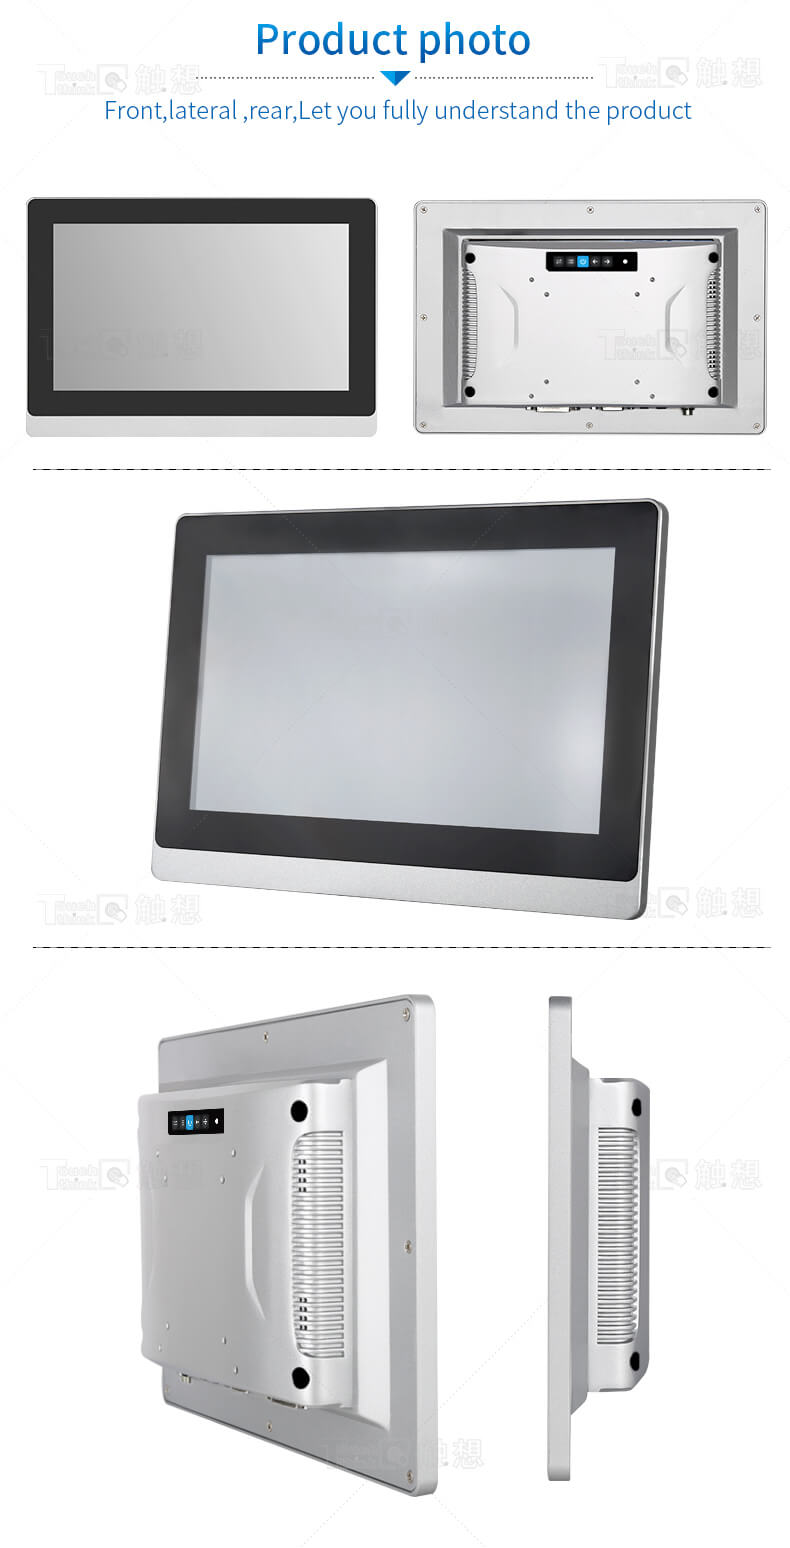 Embedded Industrial Display Touch Screen Monitor for Kiosk 17.3 inch